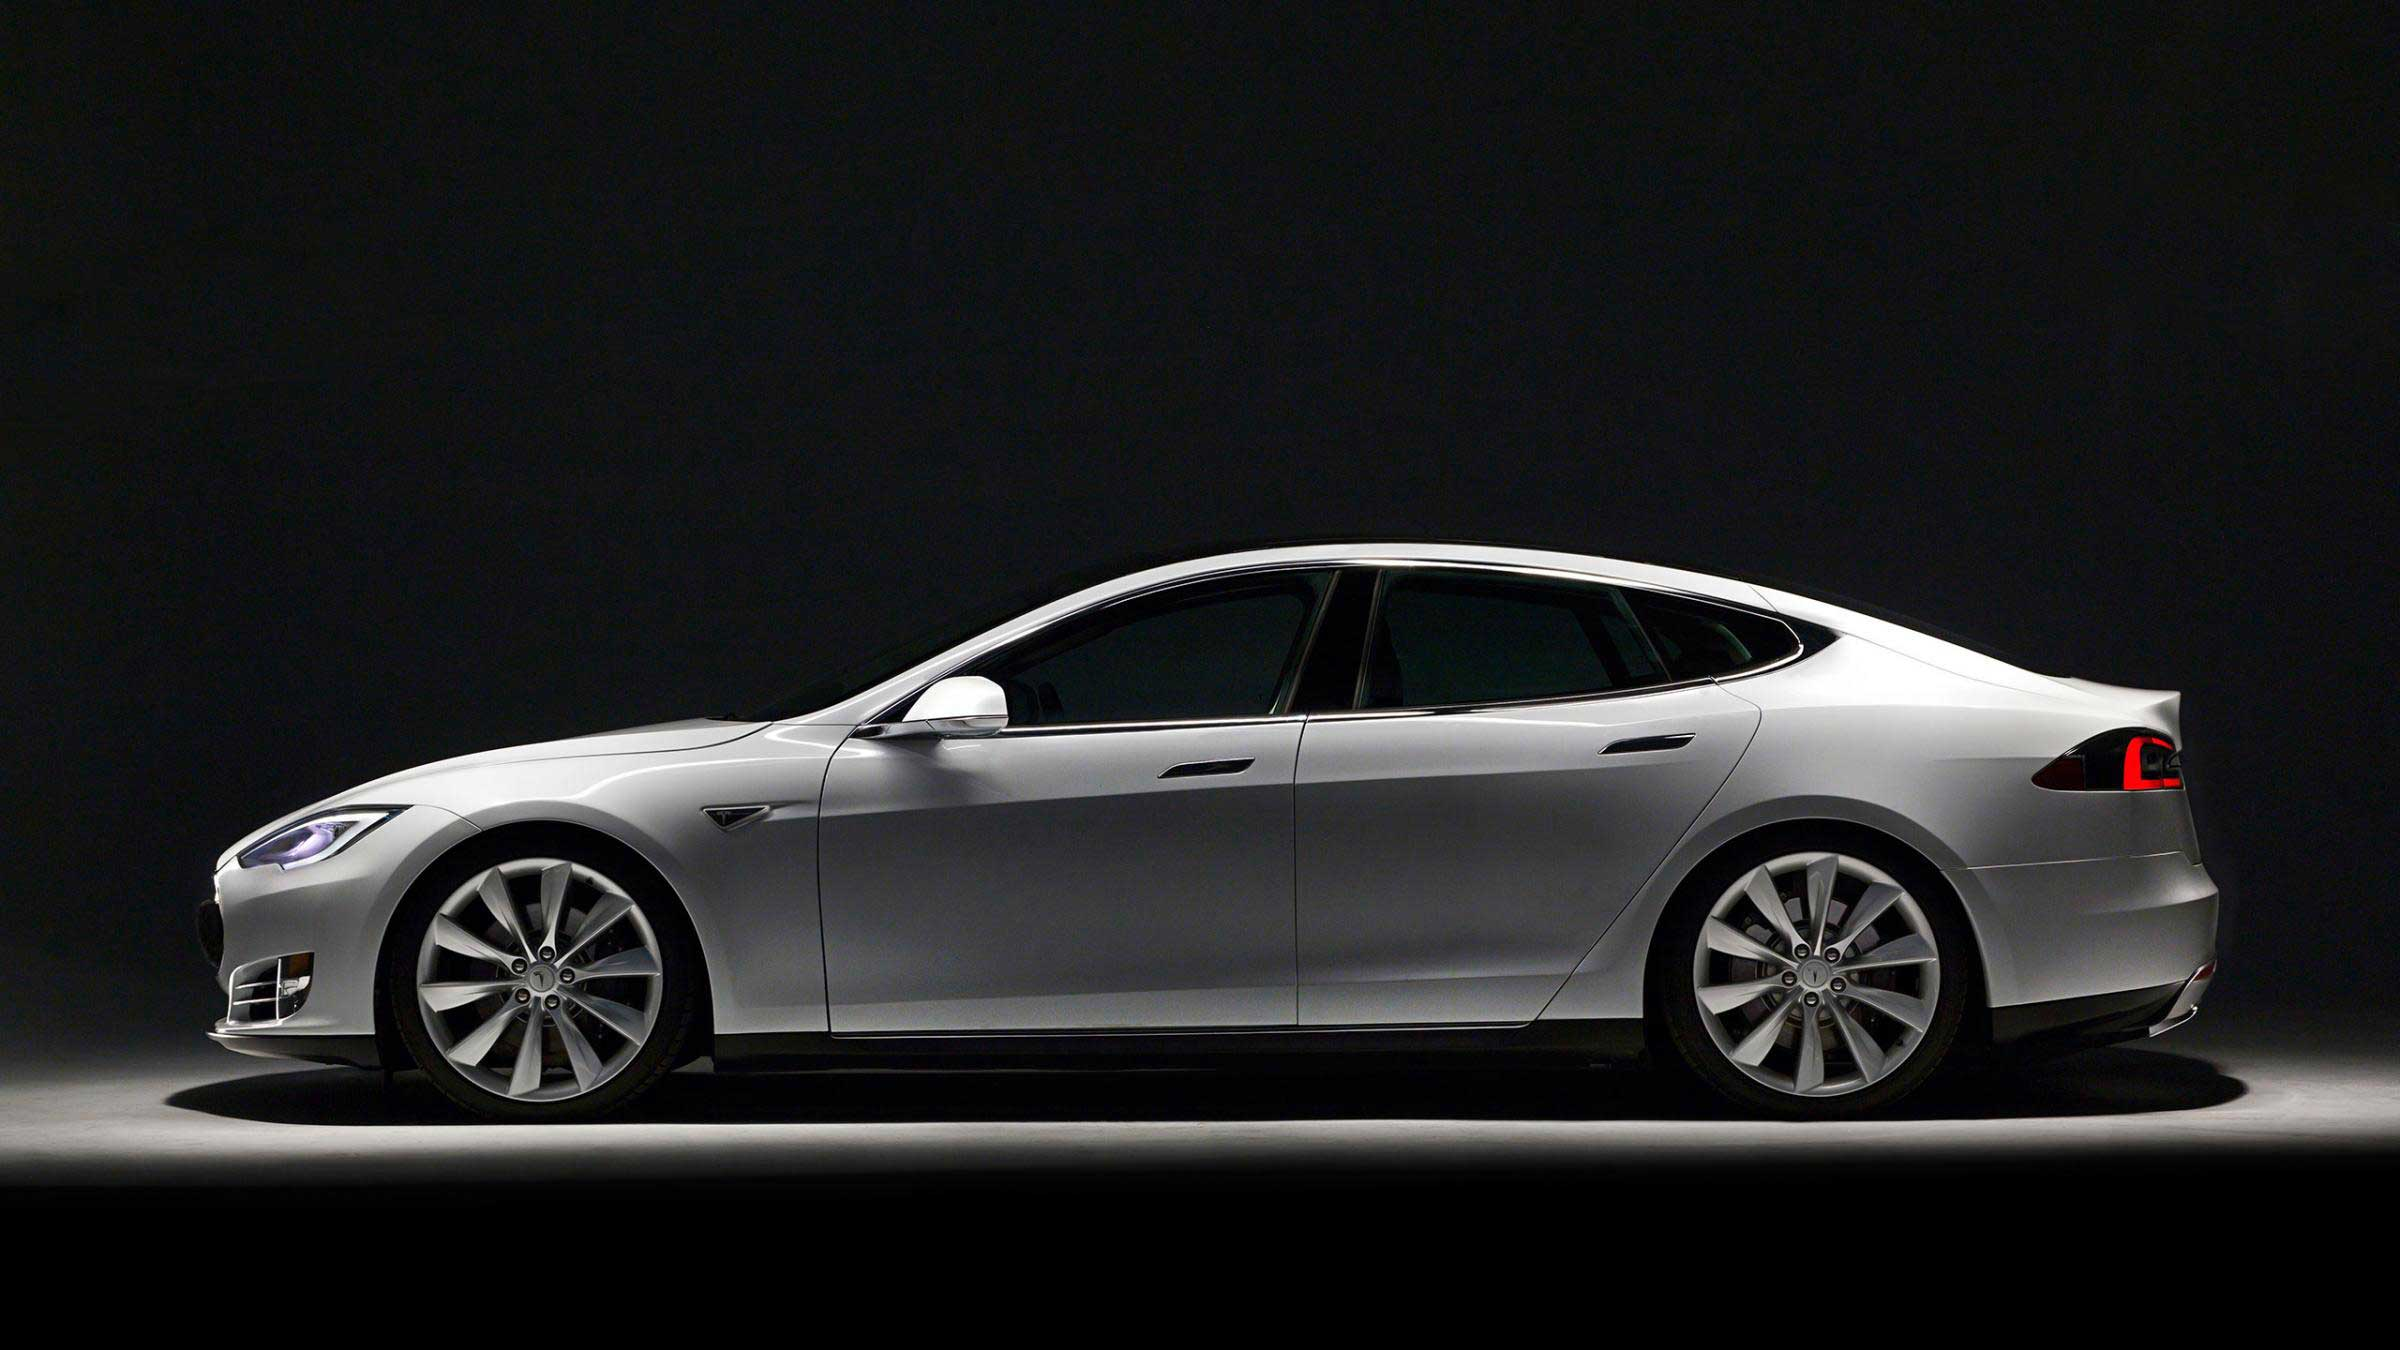 <strong>Tesla 2014 Model S</strong>                                                                      Tesla 2014 Model S has been praised both for its luxury feel and high-tech interior. The electric car offers instantaneous acceleration from a stop, a function very few other cars on the market provide.